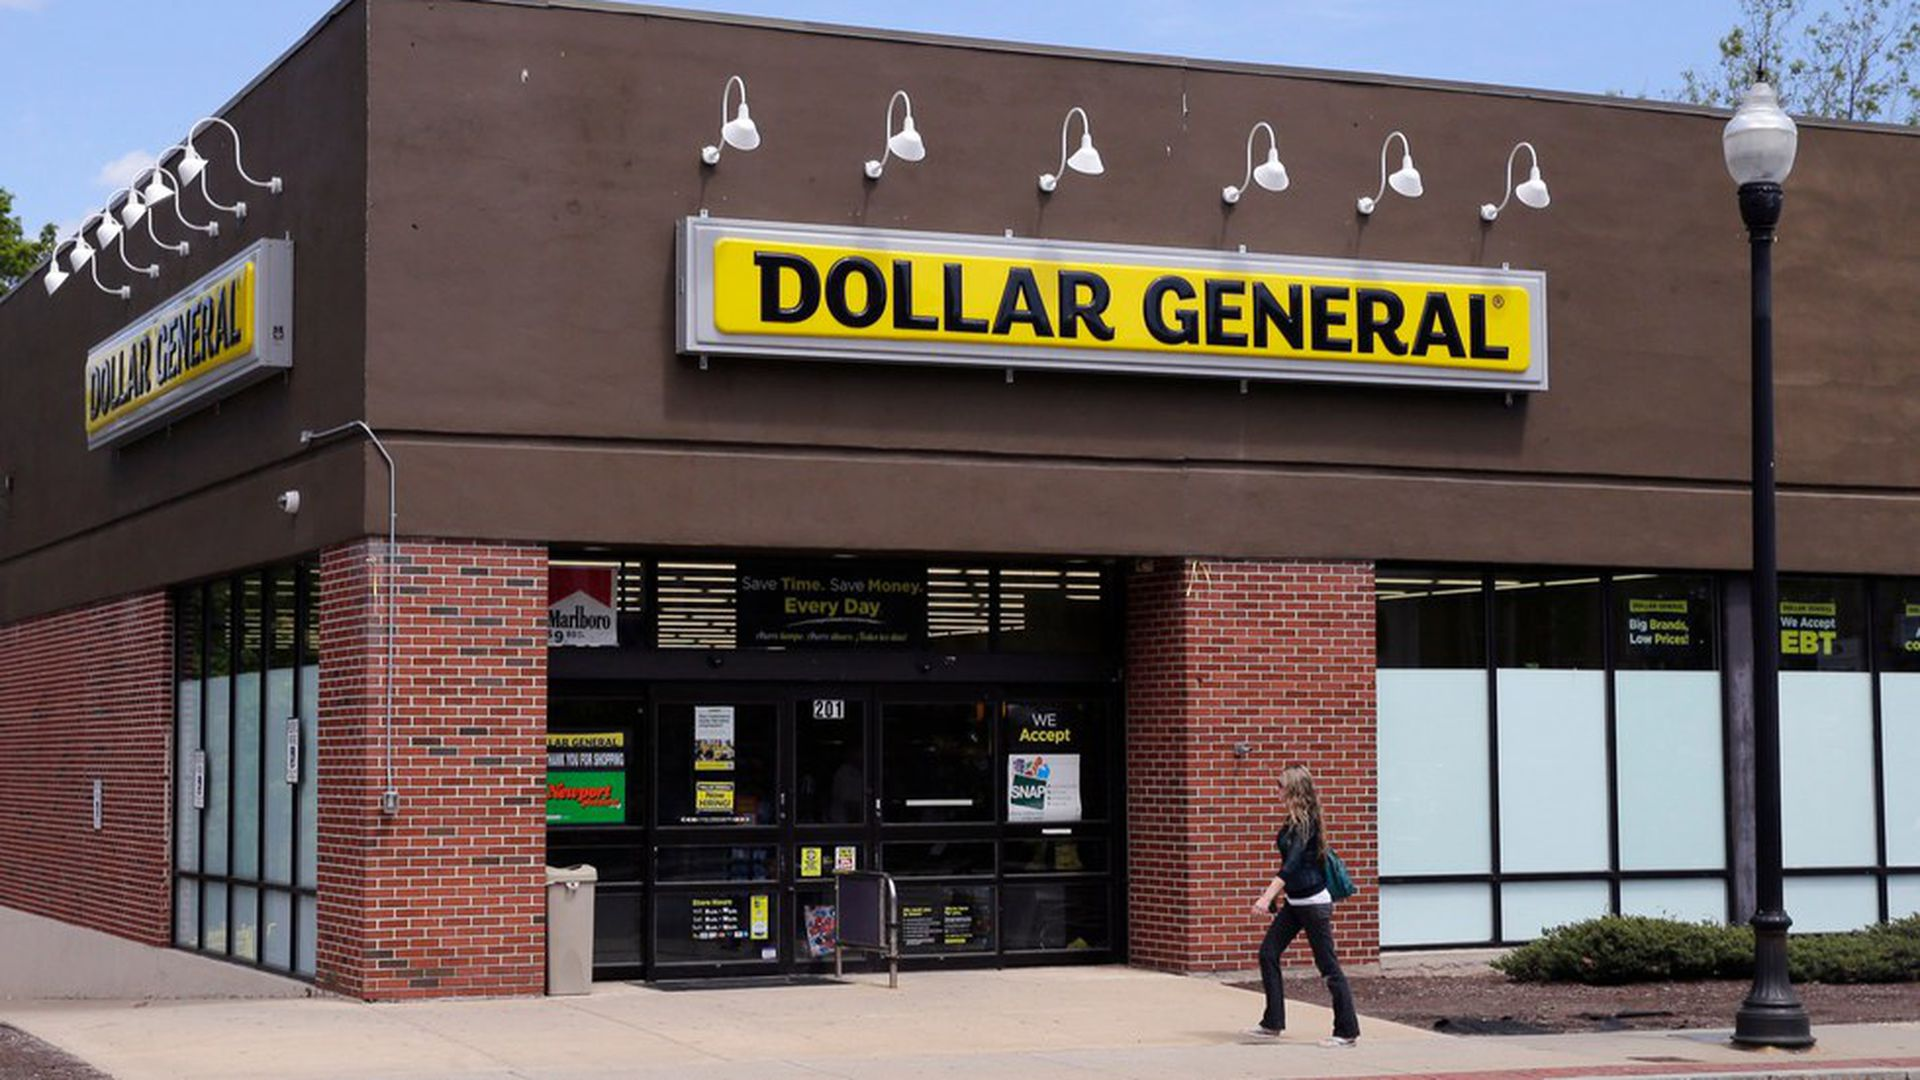 8d77b0dd5 Dollar General to open 900 new stores in 2018 - Axios